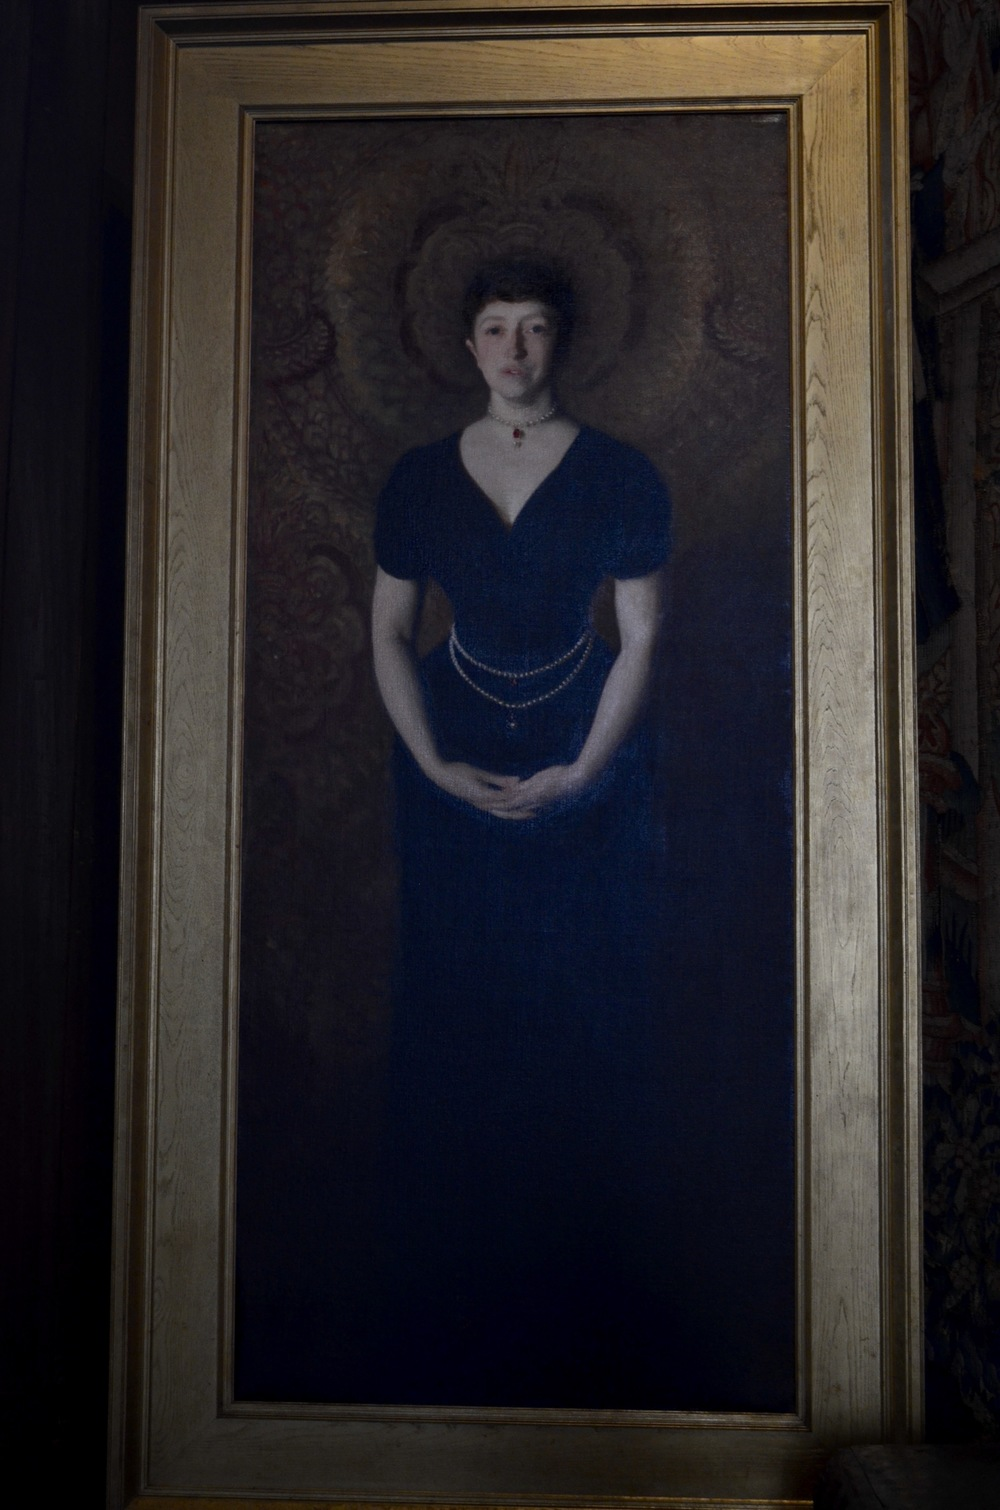 Portrait of Isabella Stewart Gardner herself, painted by her friend John Singer Sargent